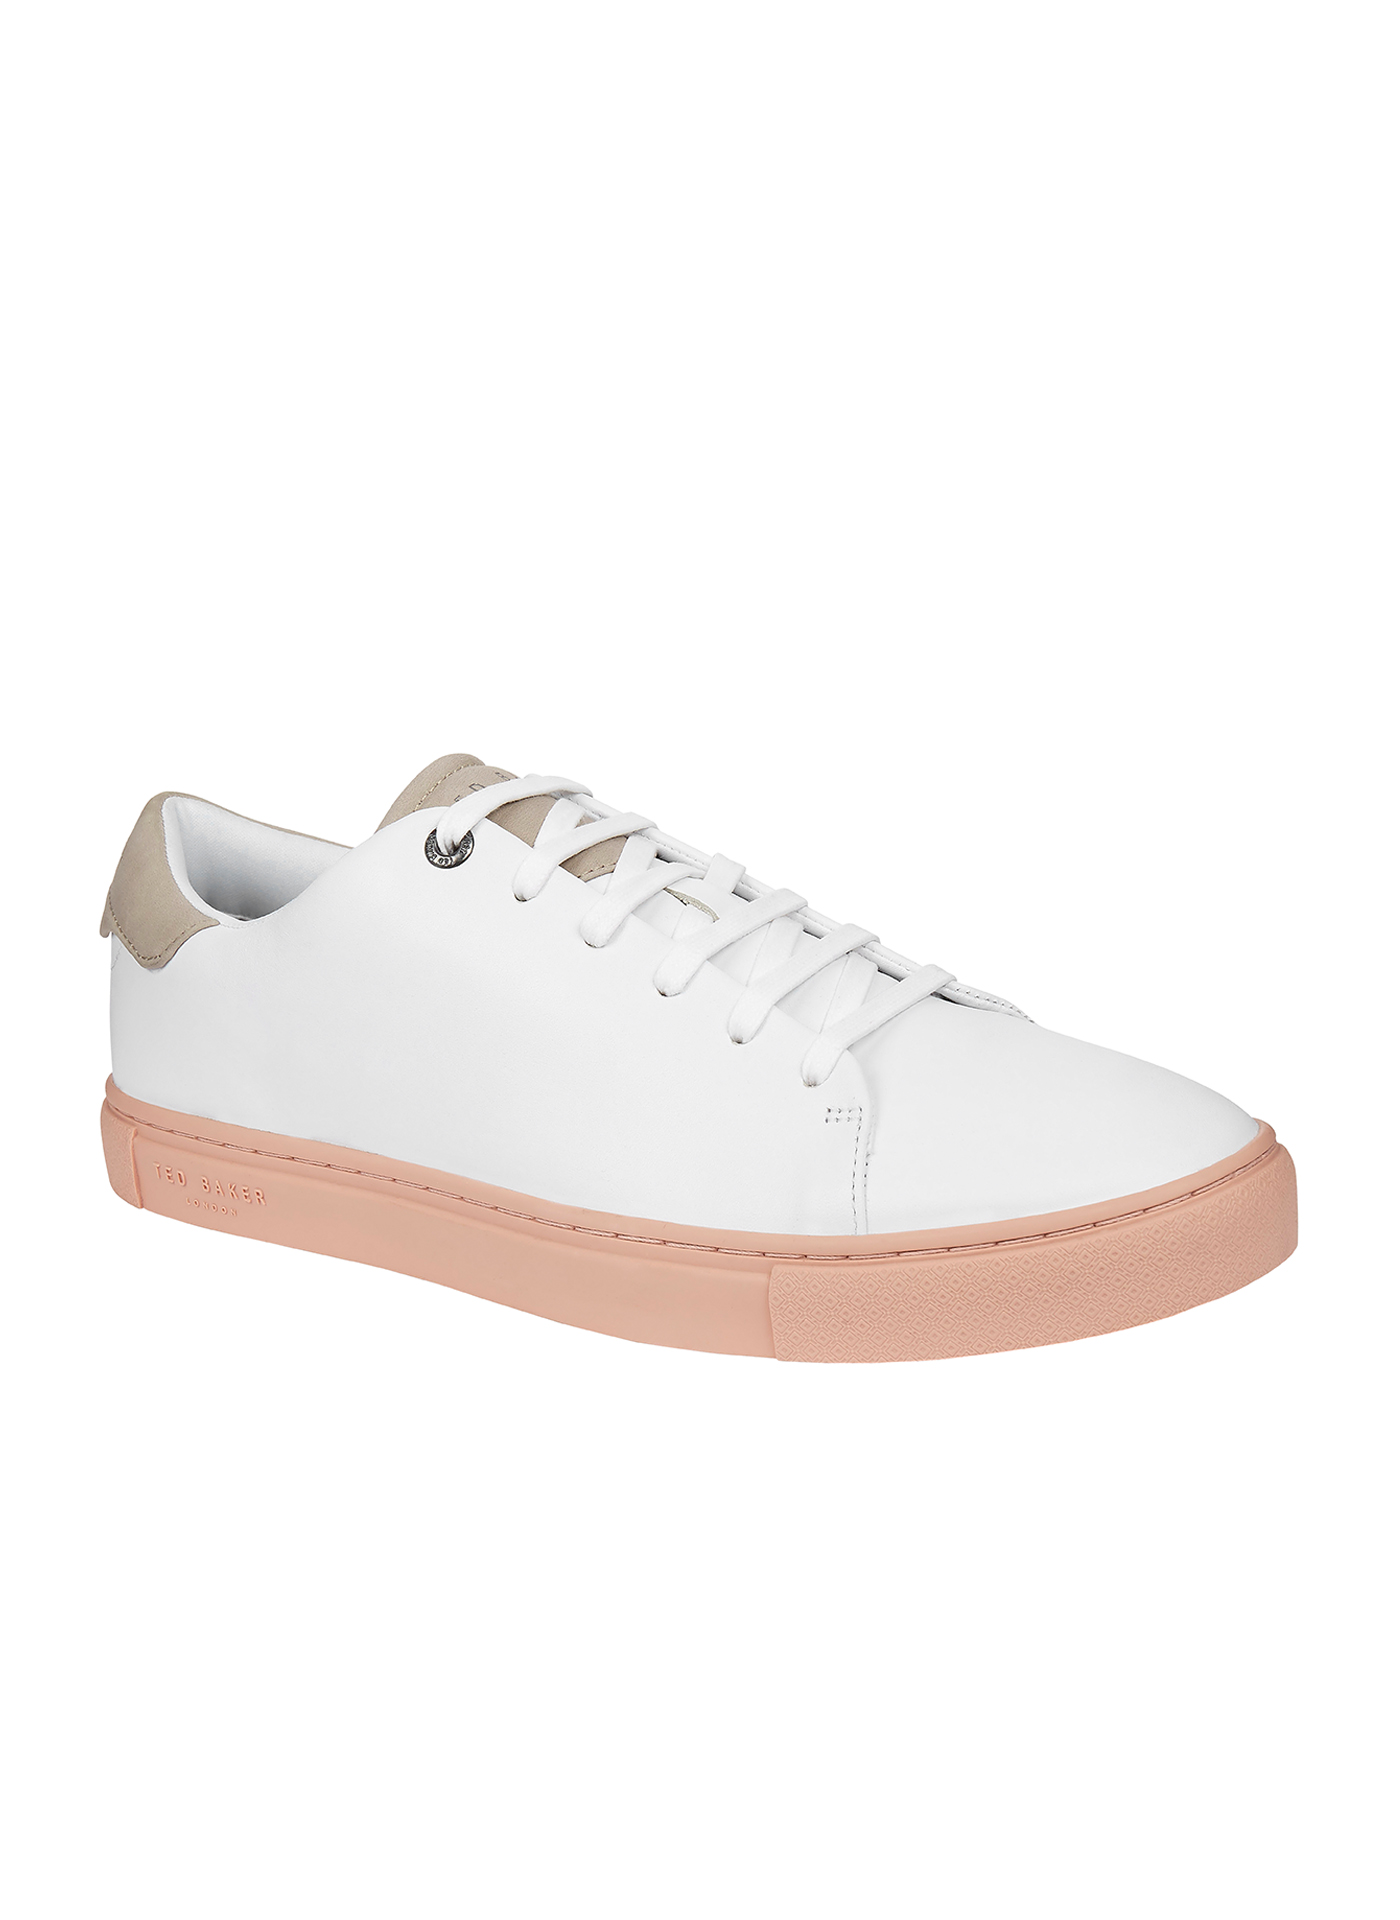 White Ted Baker casual trainers with rubber sole